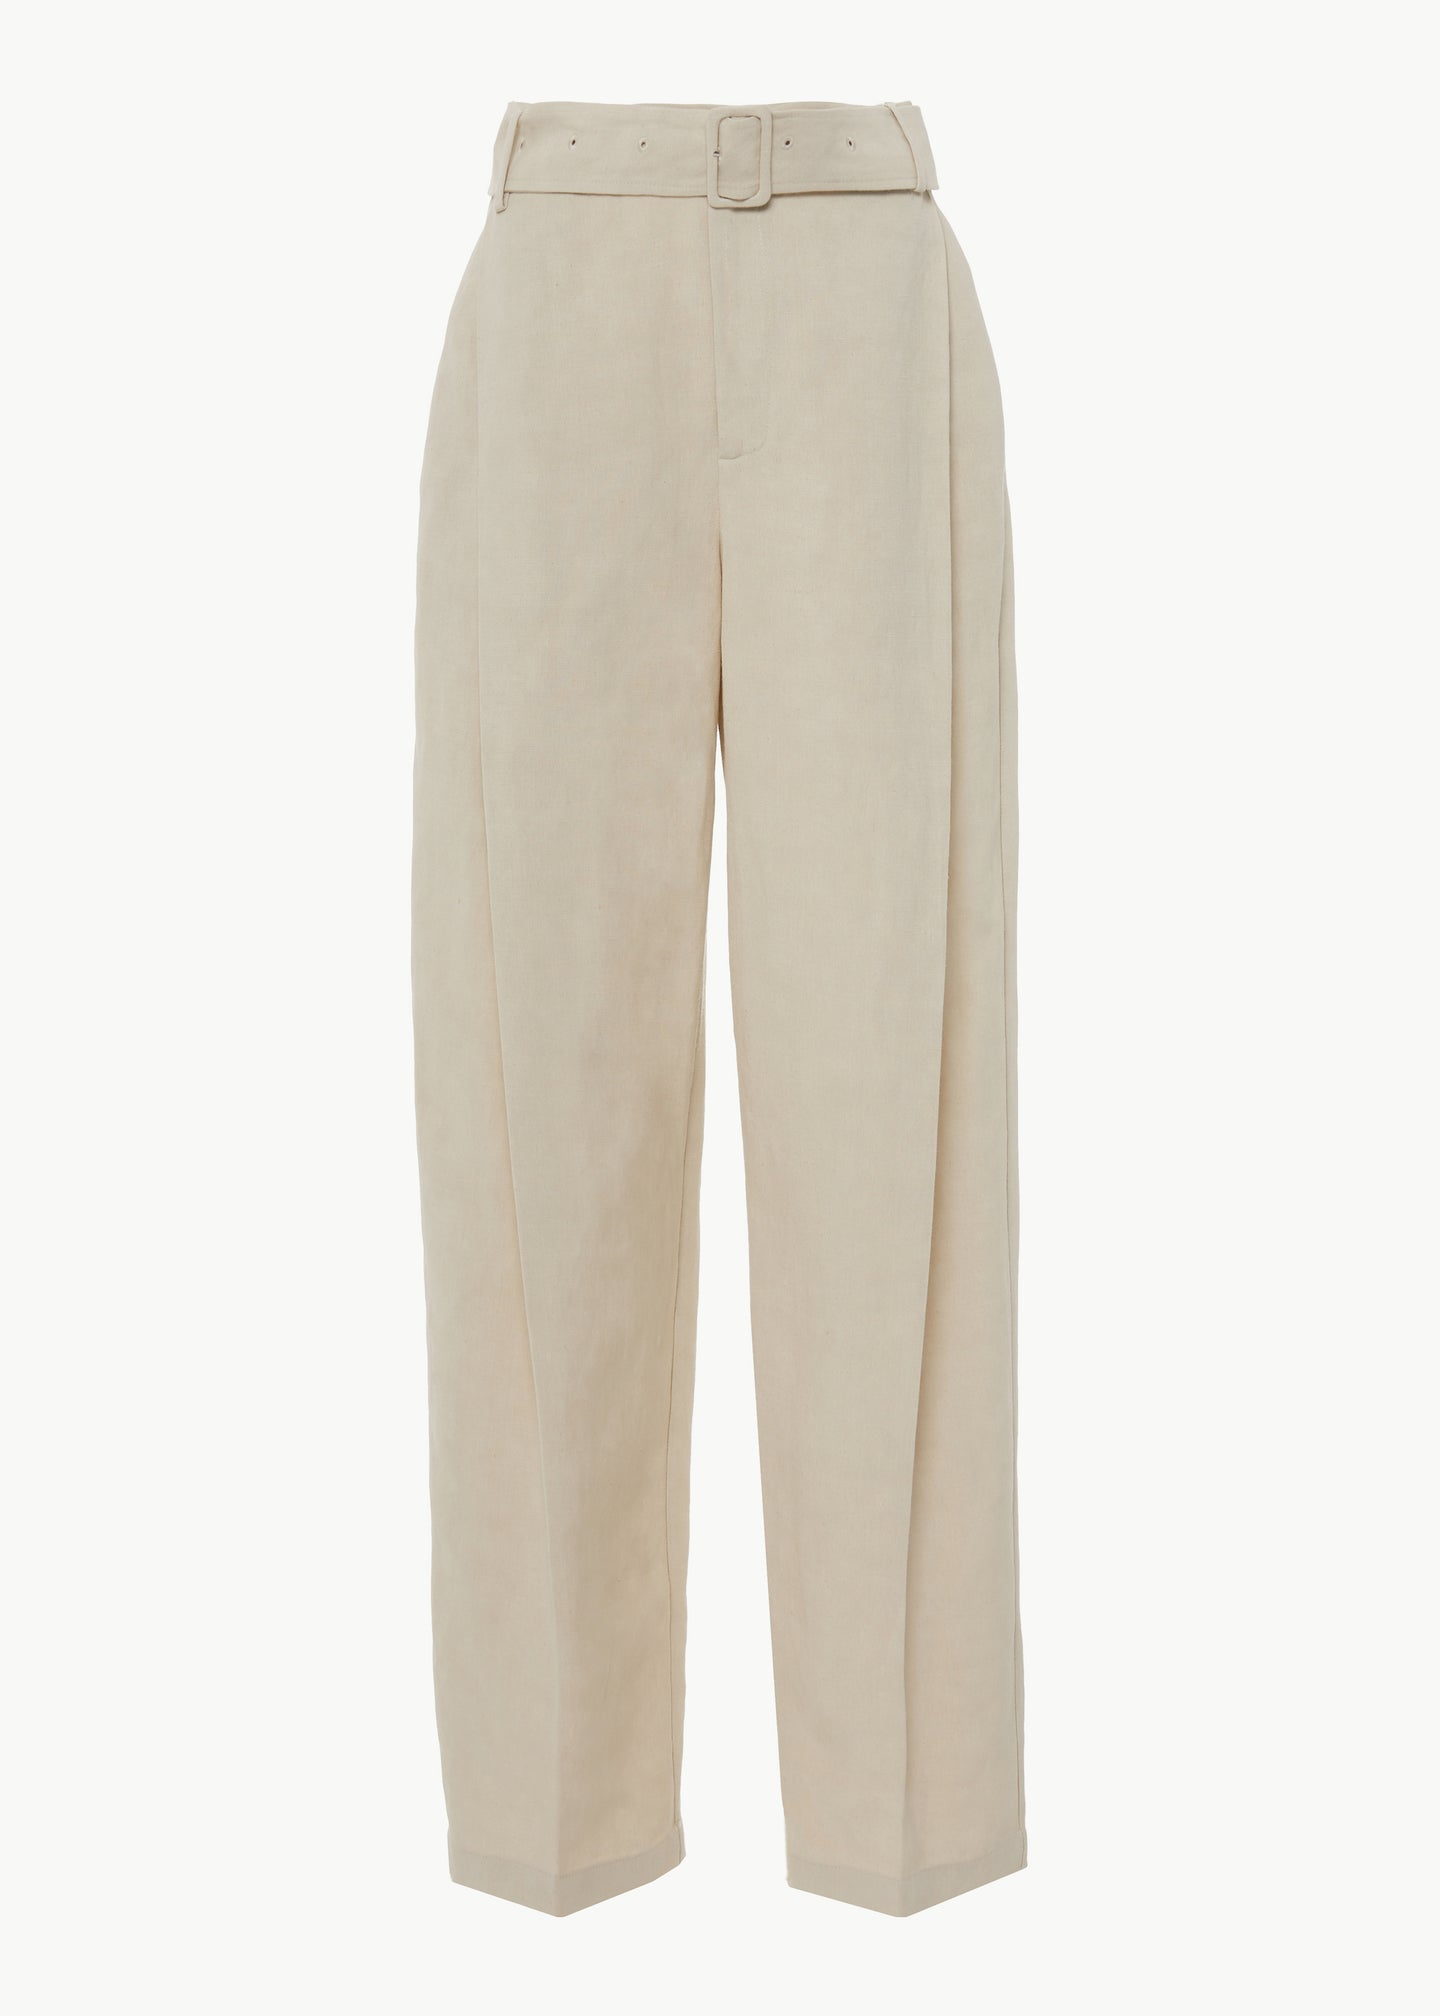 Belted Trouser in Linen - Taupe - Co Collections